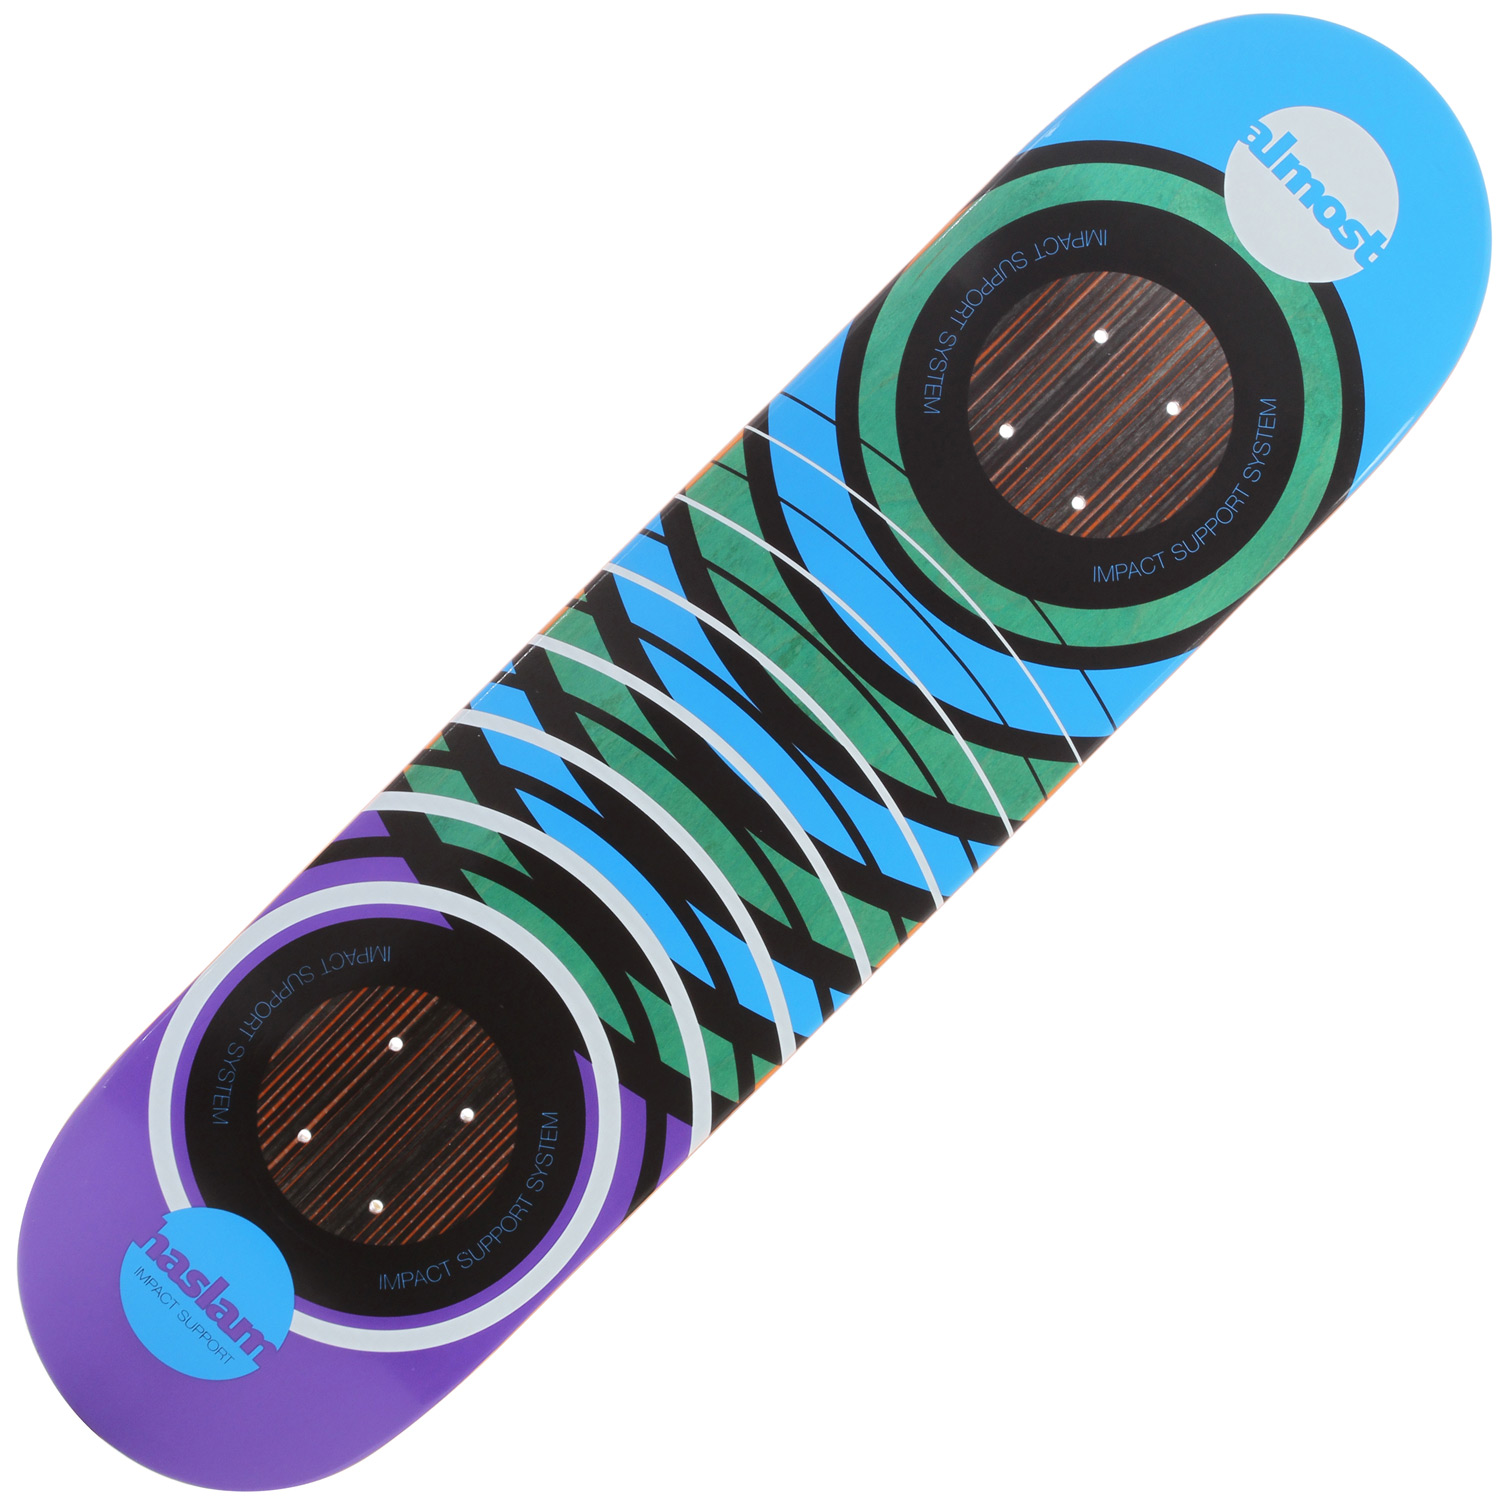 Skateboard Key Featuers of the Almost Haslam Og Impact V4 Skateboard: Carbon fiber strips Die-cut carbon fiber discs disperses energy away from breaking points Energy disperses throughout the entire deck - $49.95